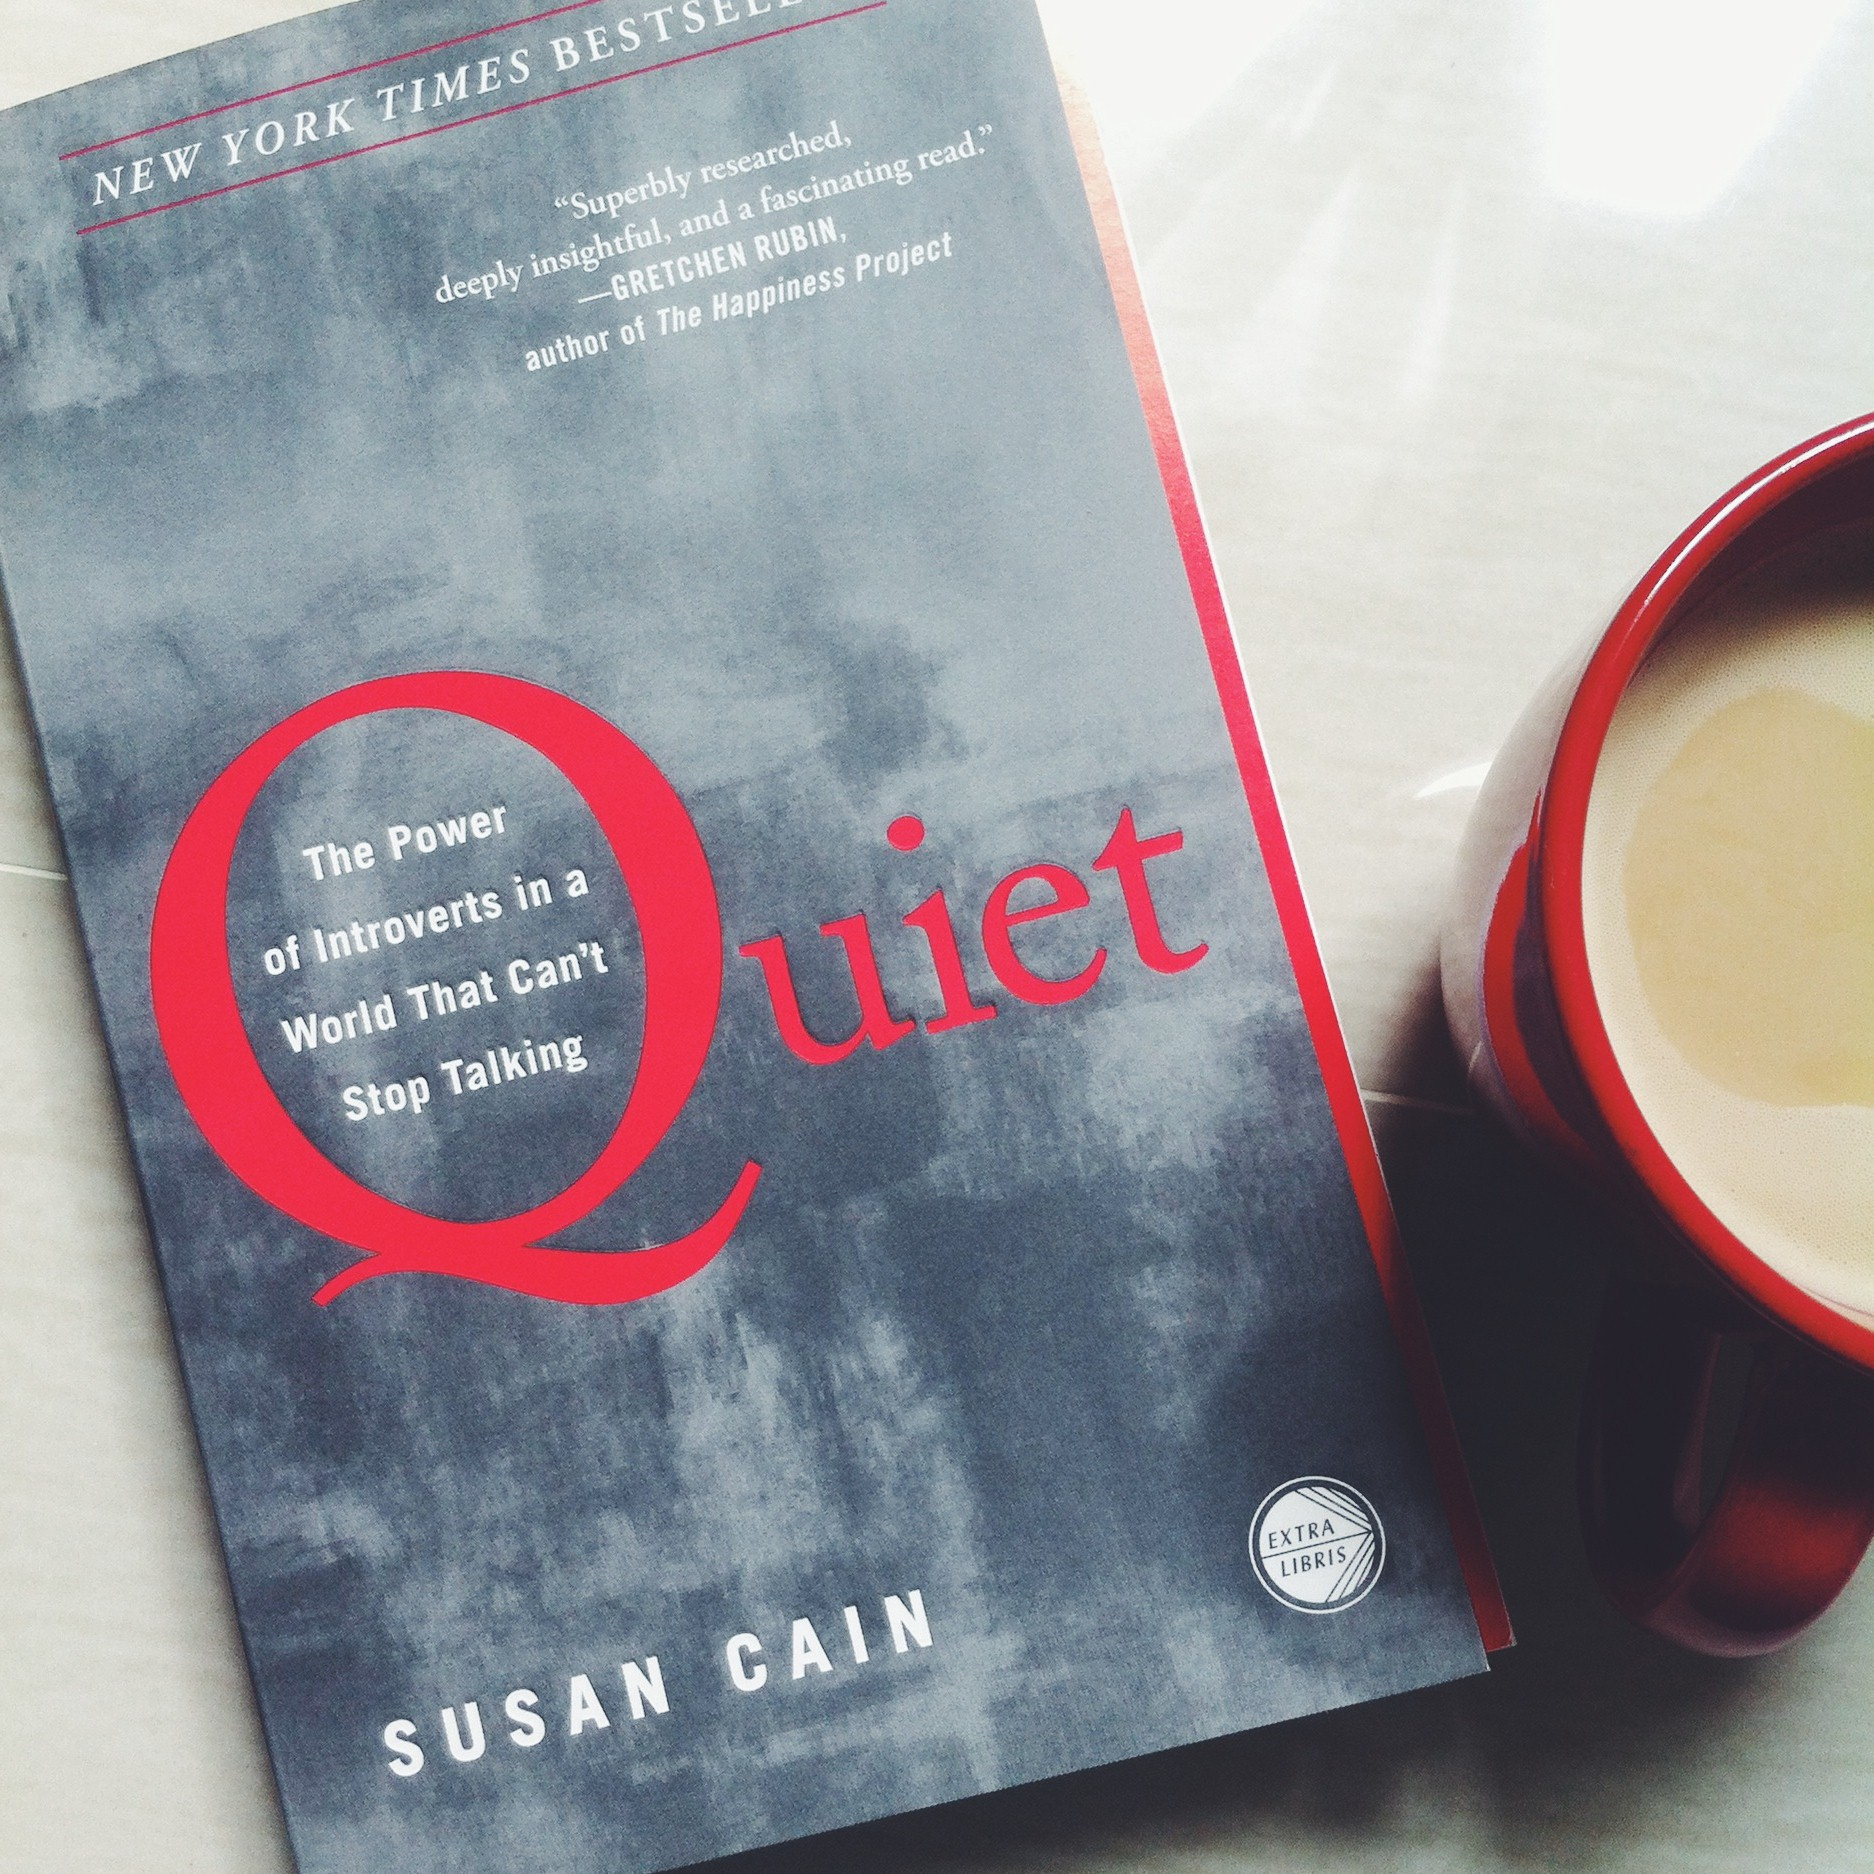 quiet-the-power-of-introverts-in-a-world-that-cant-stop-talking-by-susan-cain_t20_wKyPbW